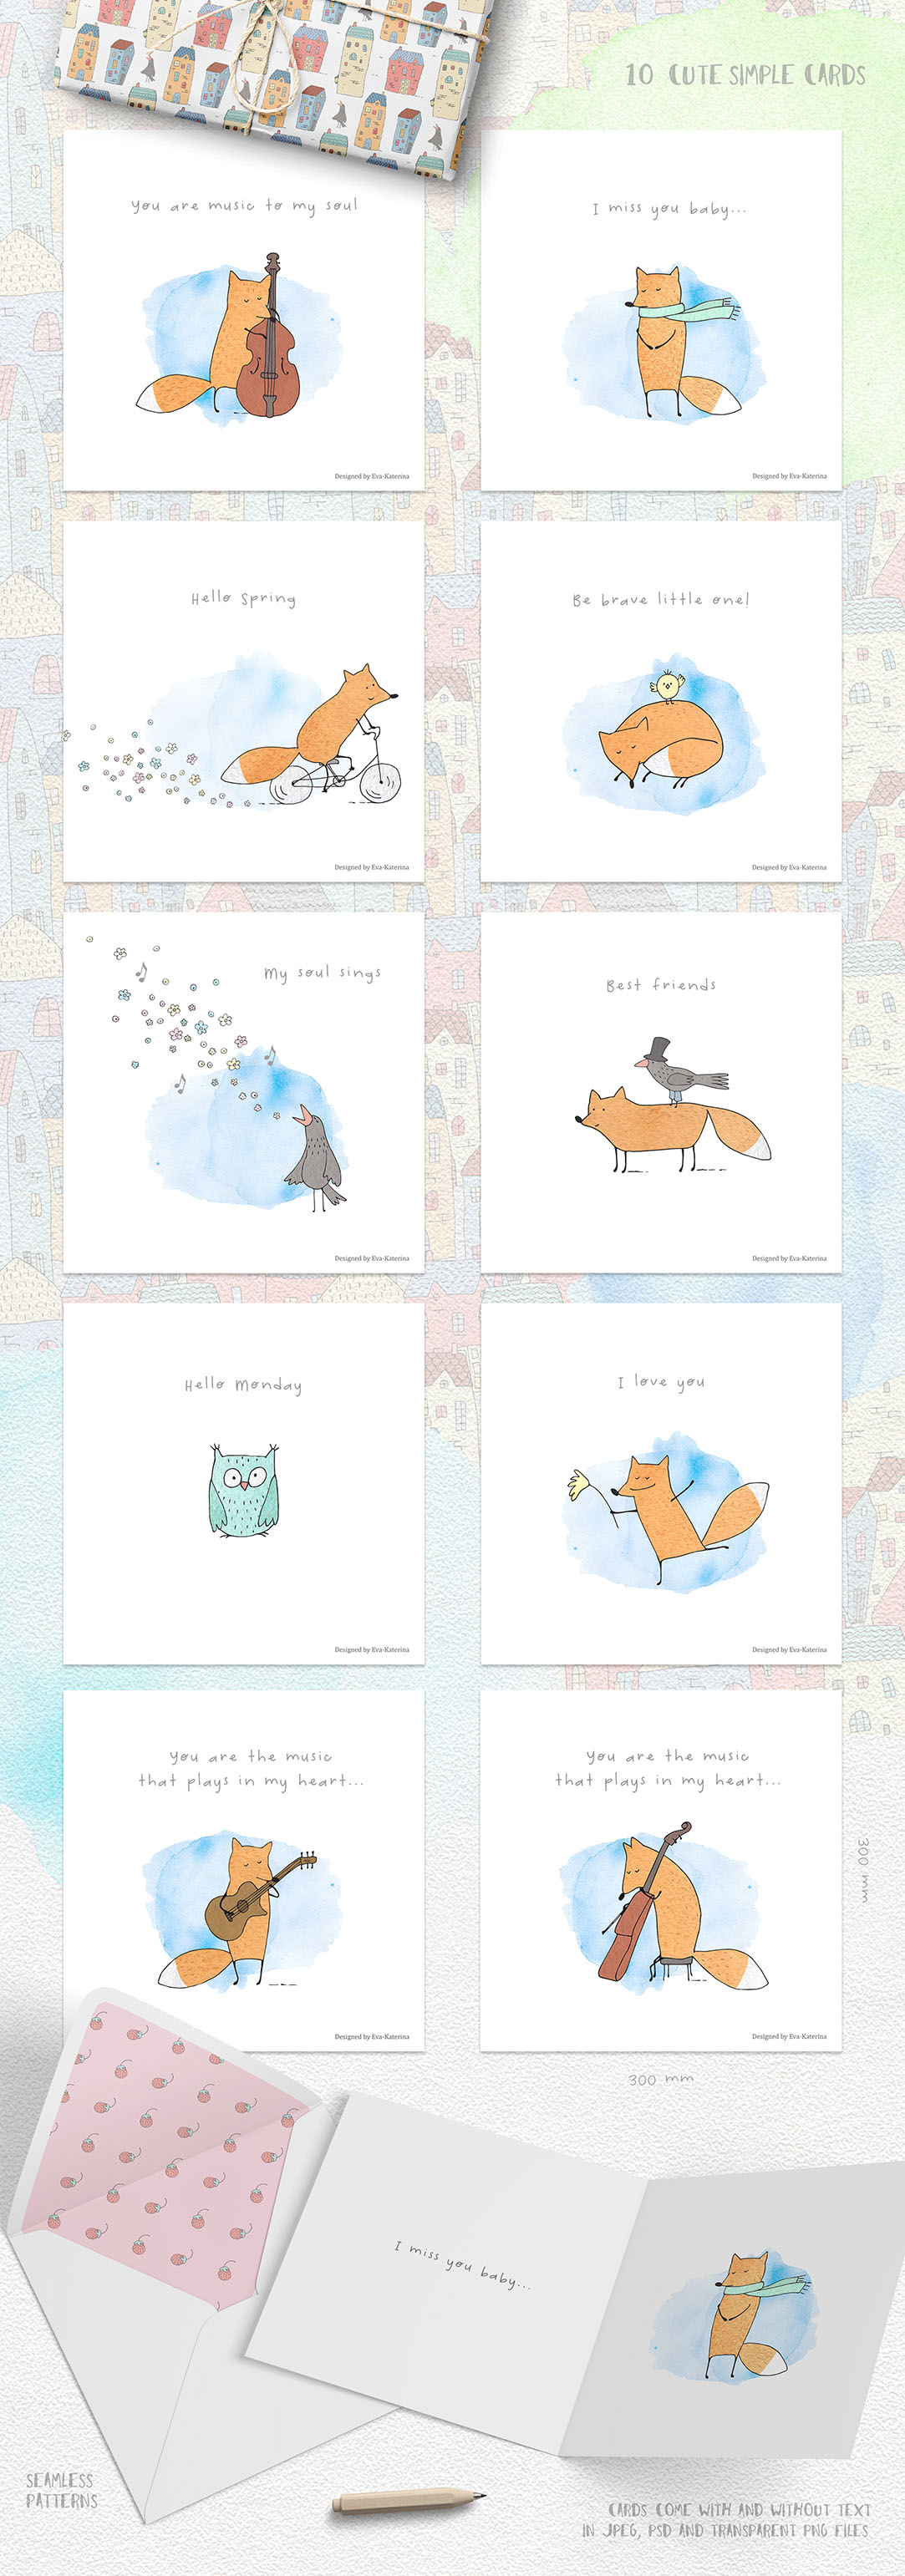 Foxtrot: Cute Vector & Watercolor Graphics